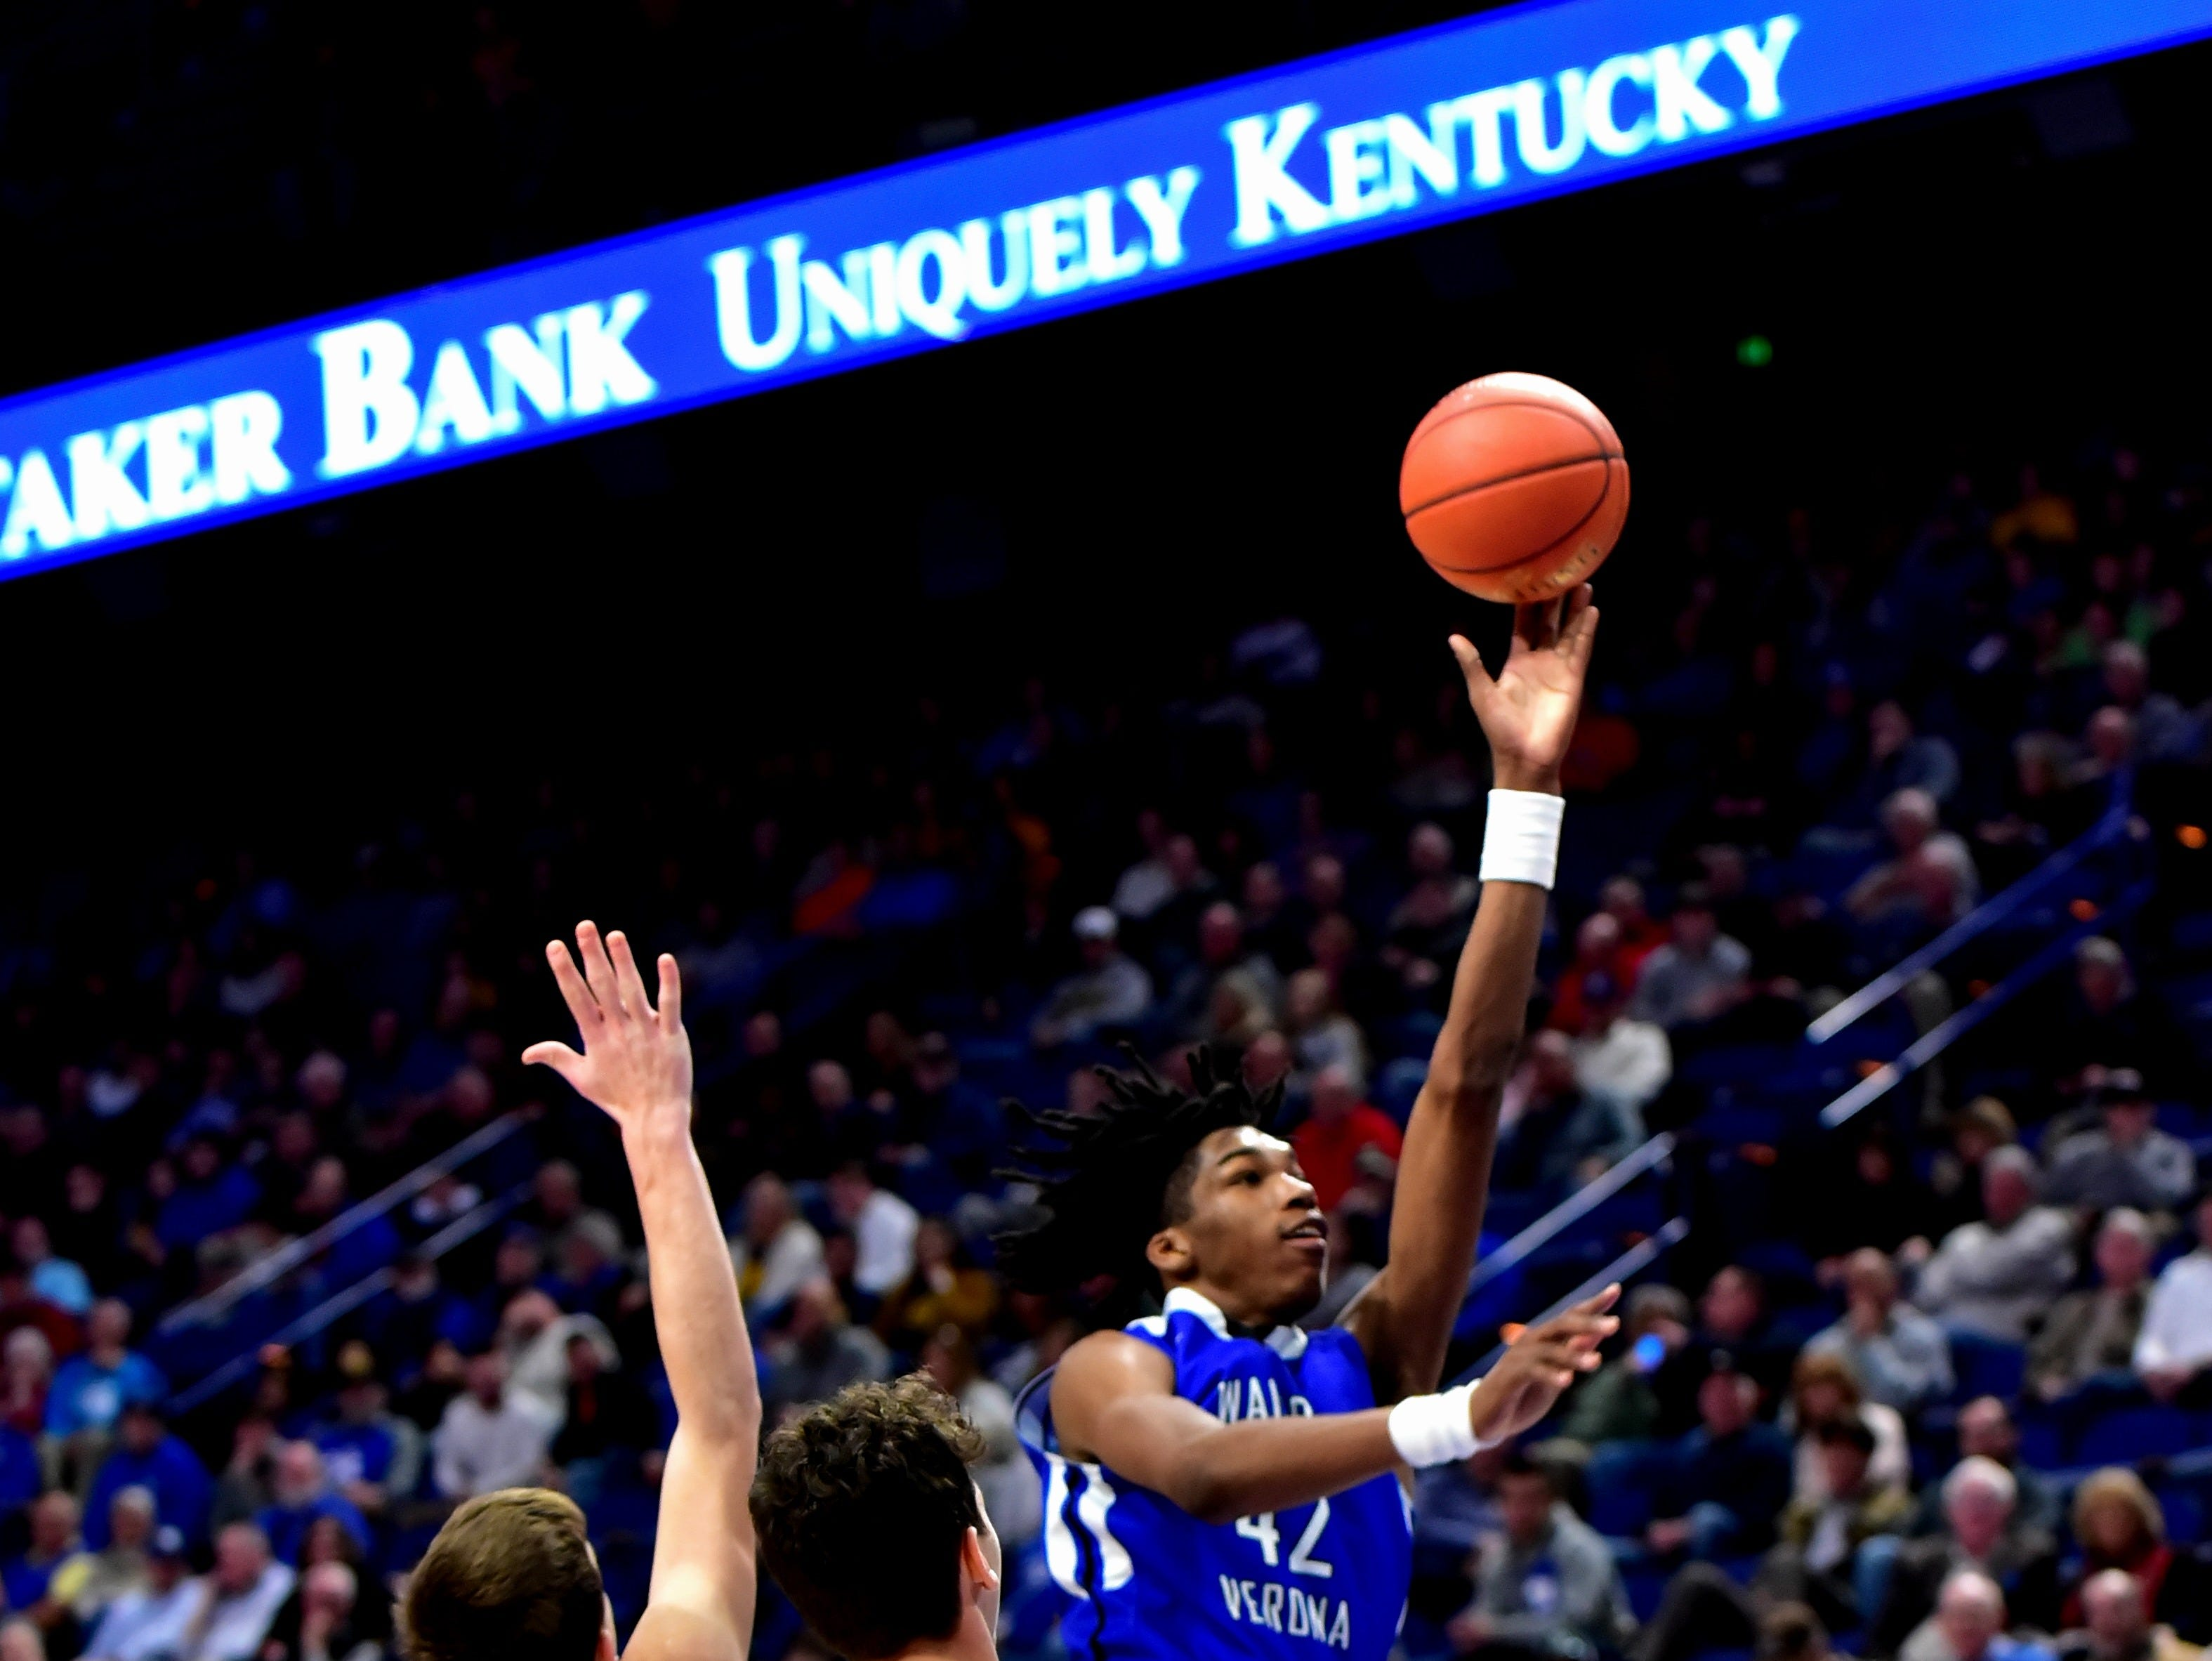 Dieonte Miles (42) of Walton Verona floats home a left handed layup at the KHSAA Sweet 16 Tournament at Rupp Arena in Lexington, KY, March 6, 2019